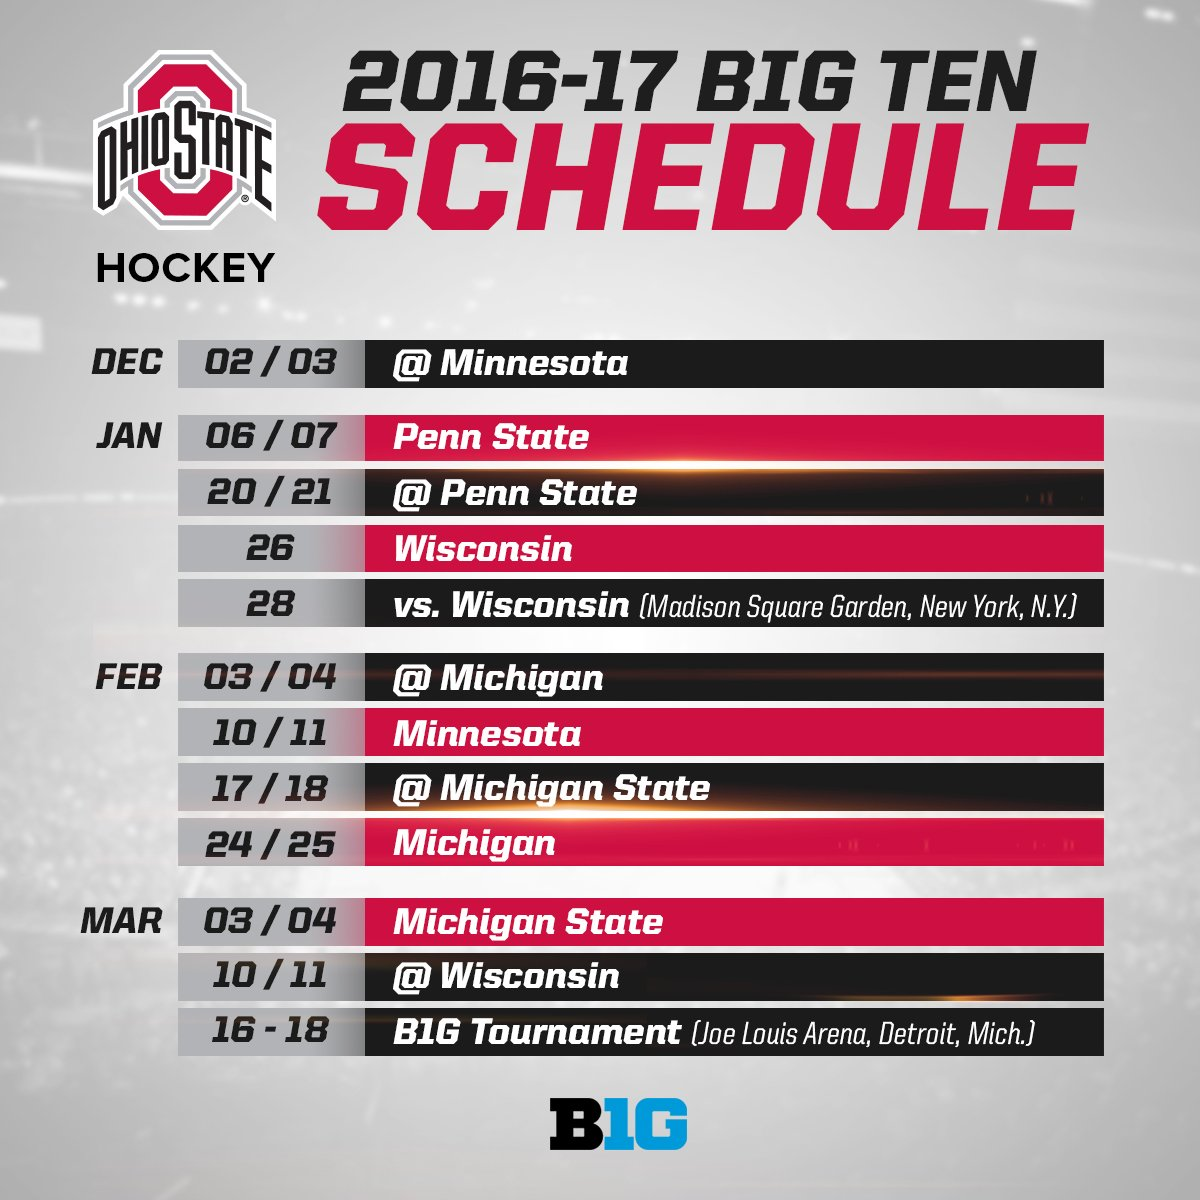 ohio state football schedule